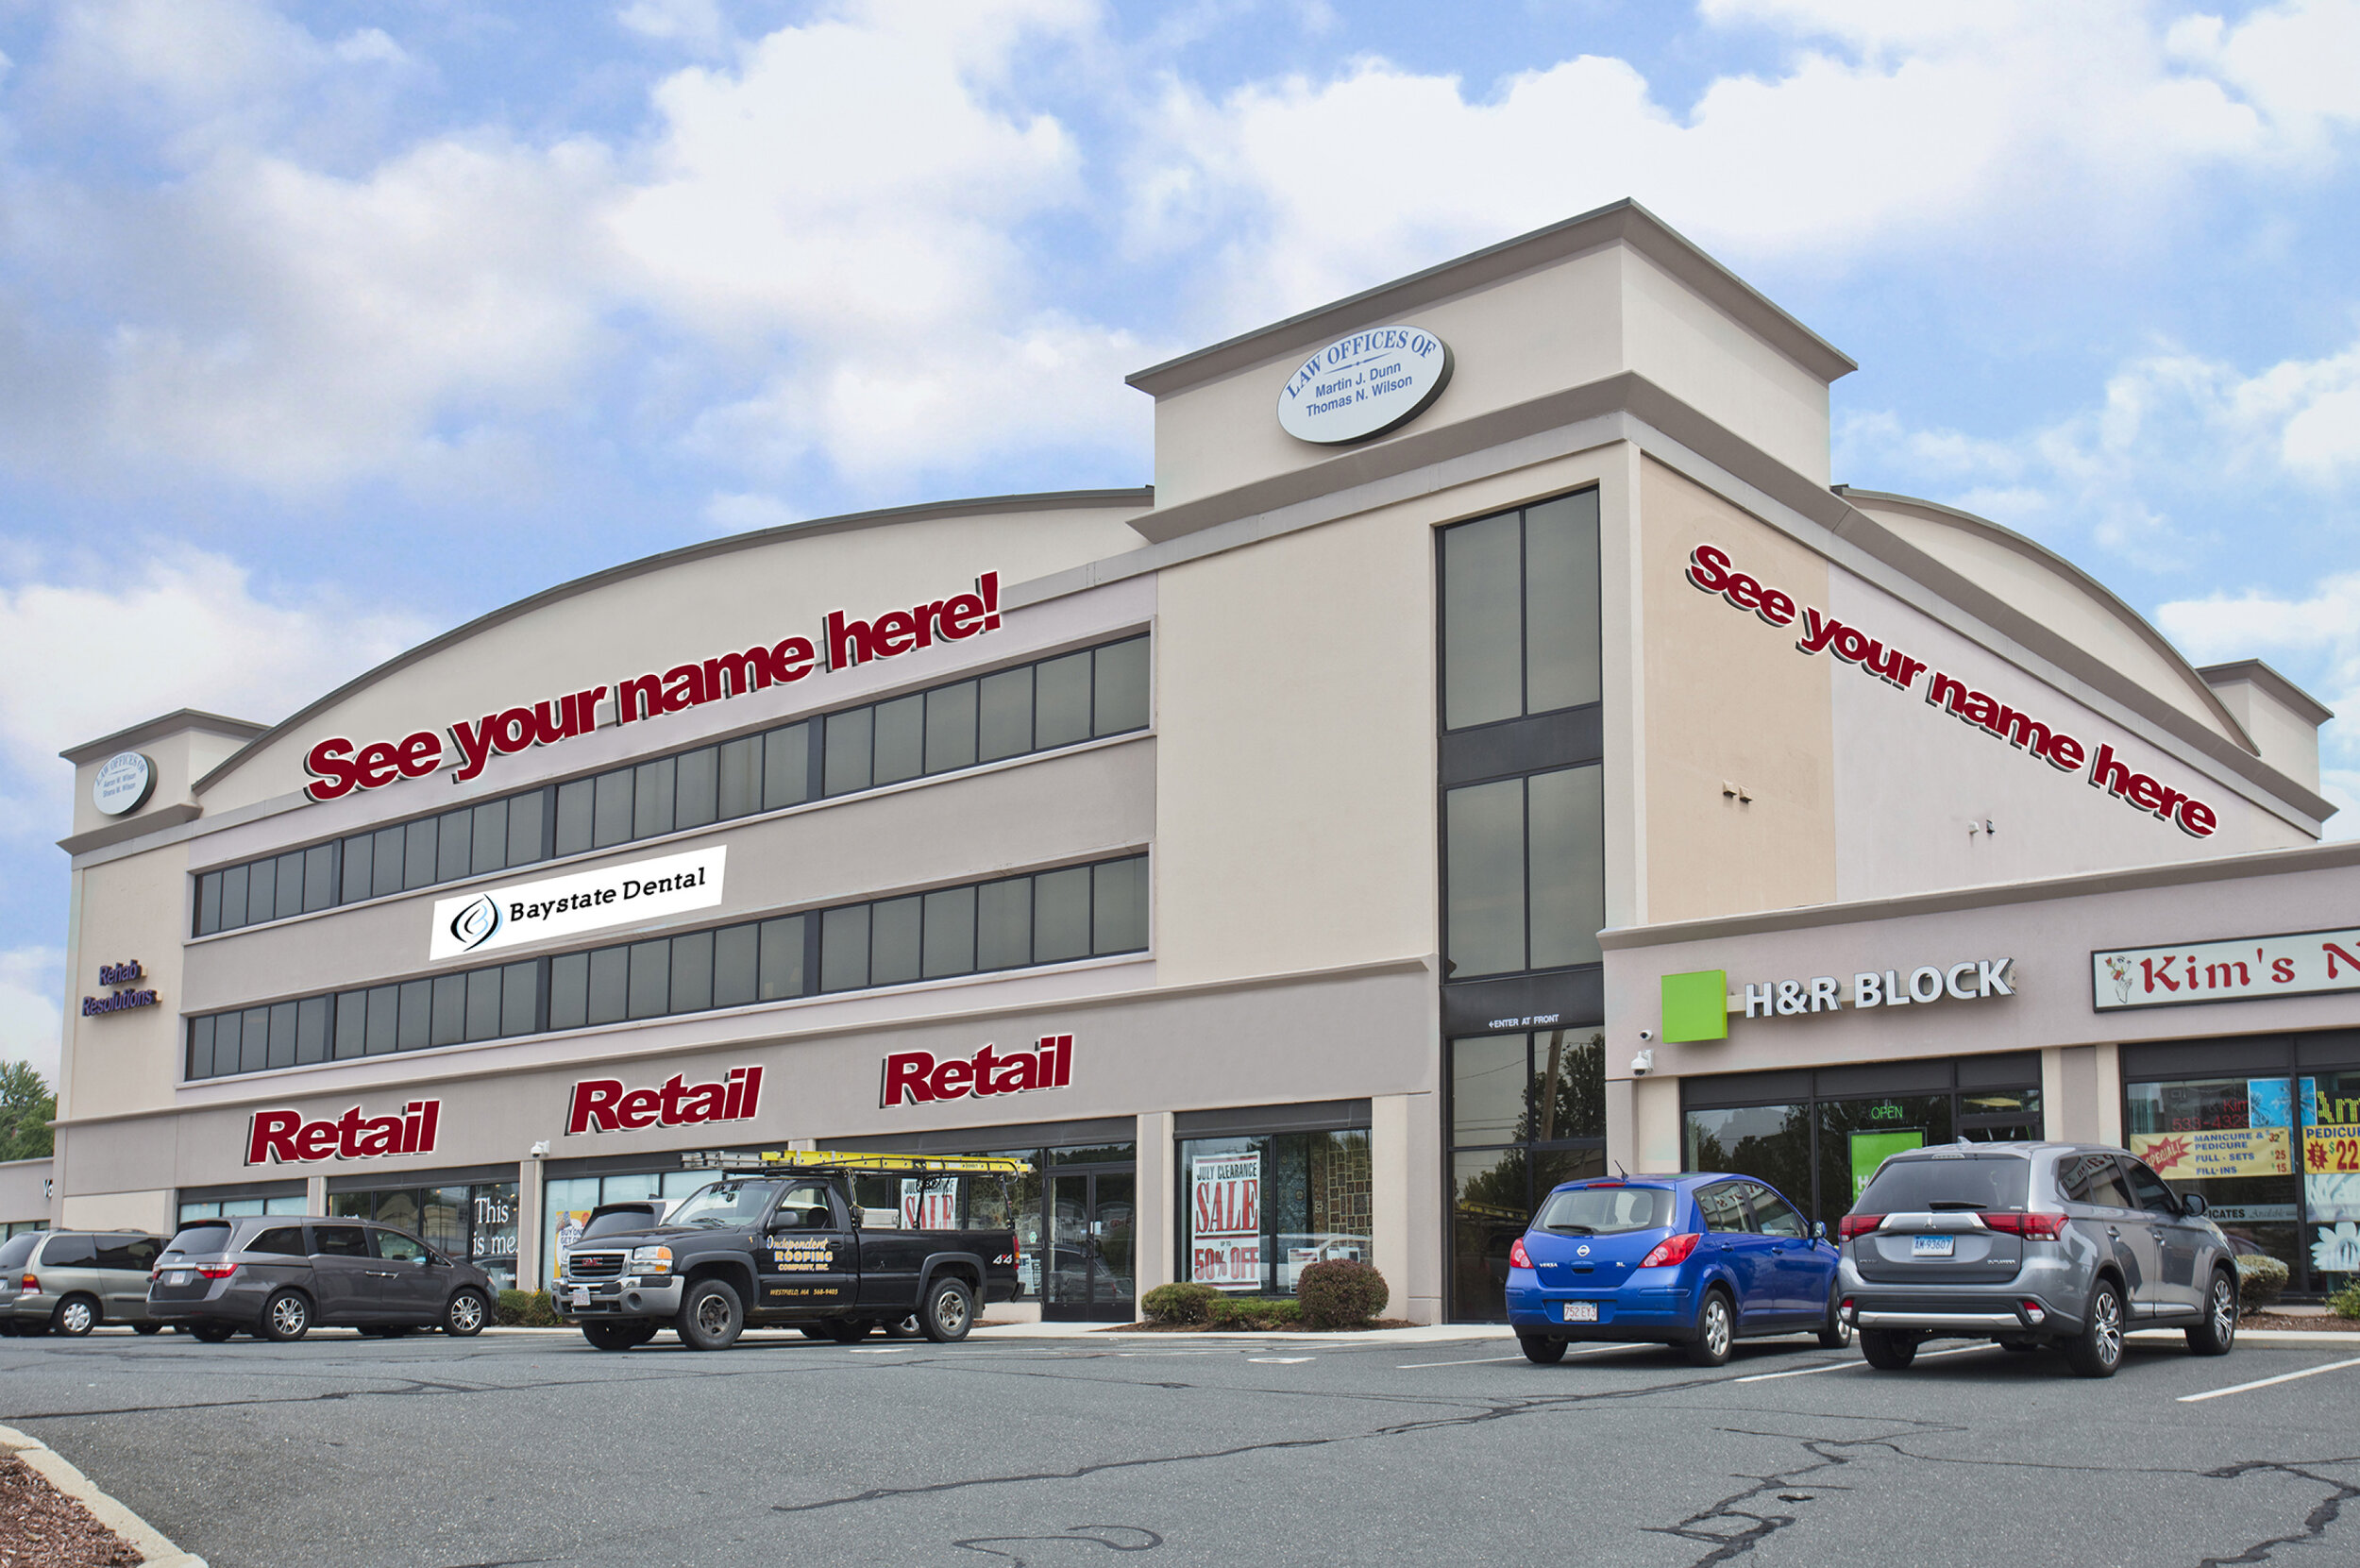 Location: 98 Lower Westfield Road, Holyoke, Massachusetts Size: +/- 13,200 SF (sub-dividable) of ground floor retail available and +/- 3,000 SF of retail/office flex space available